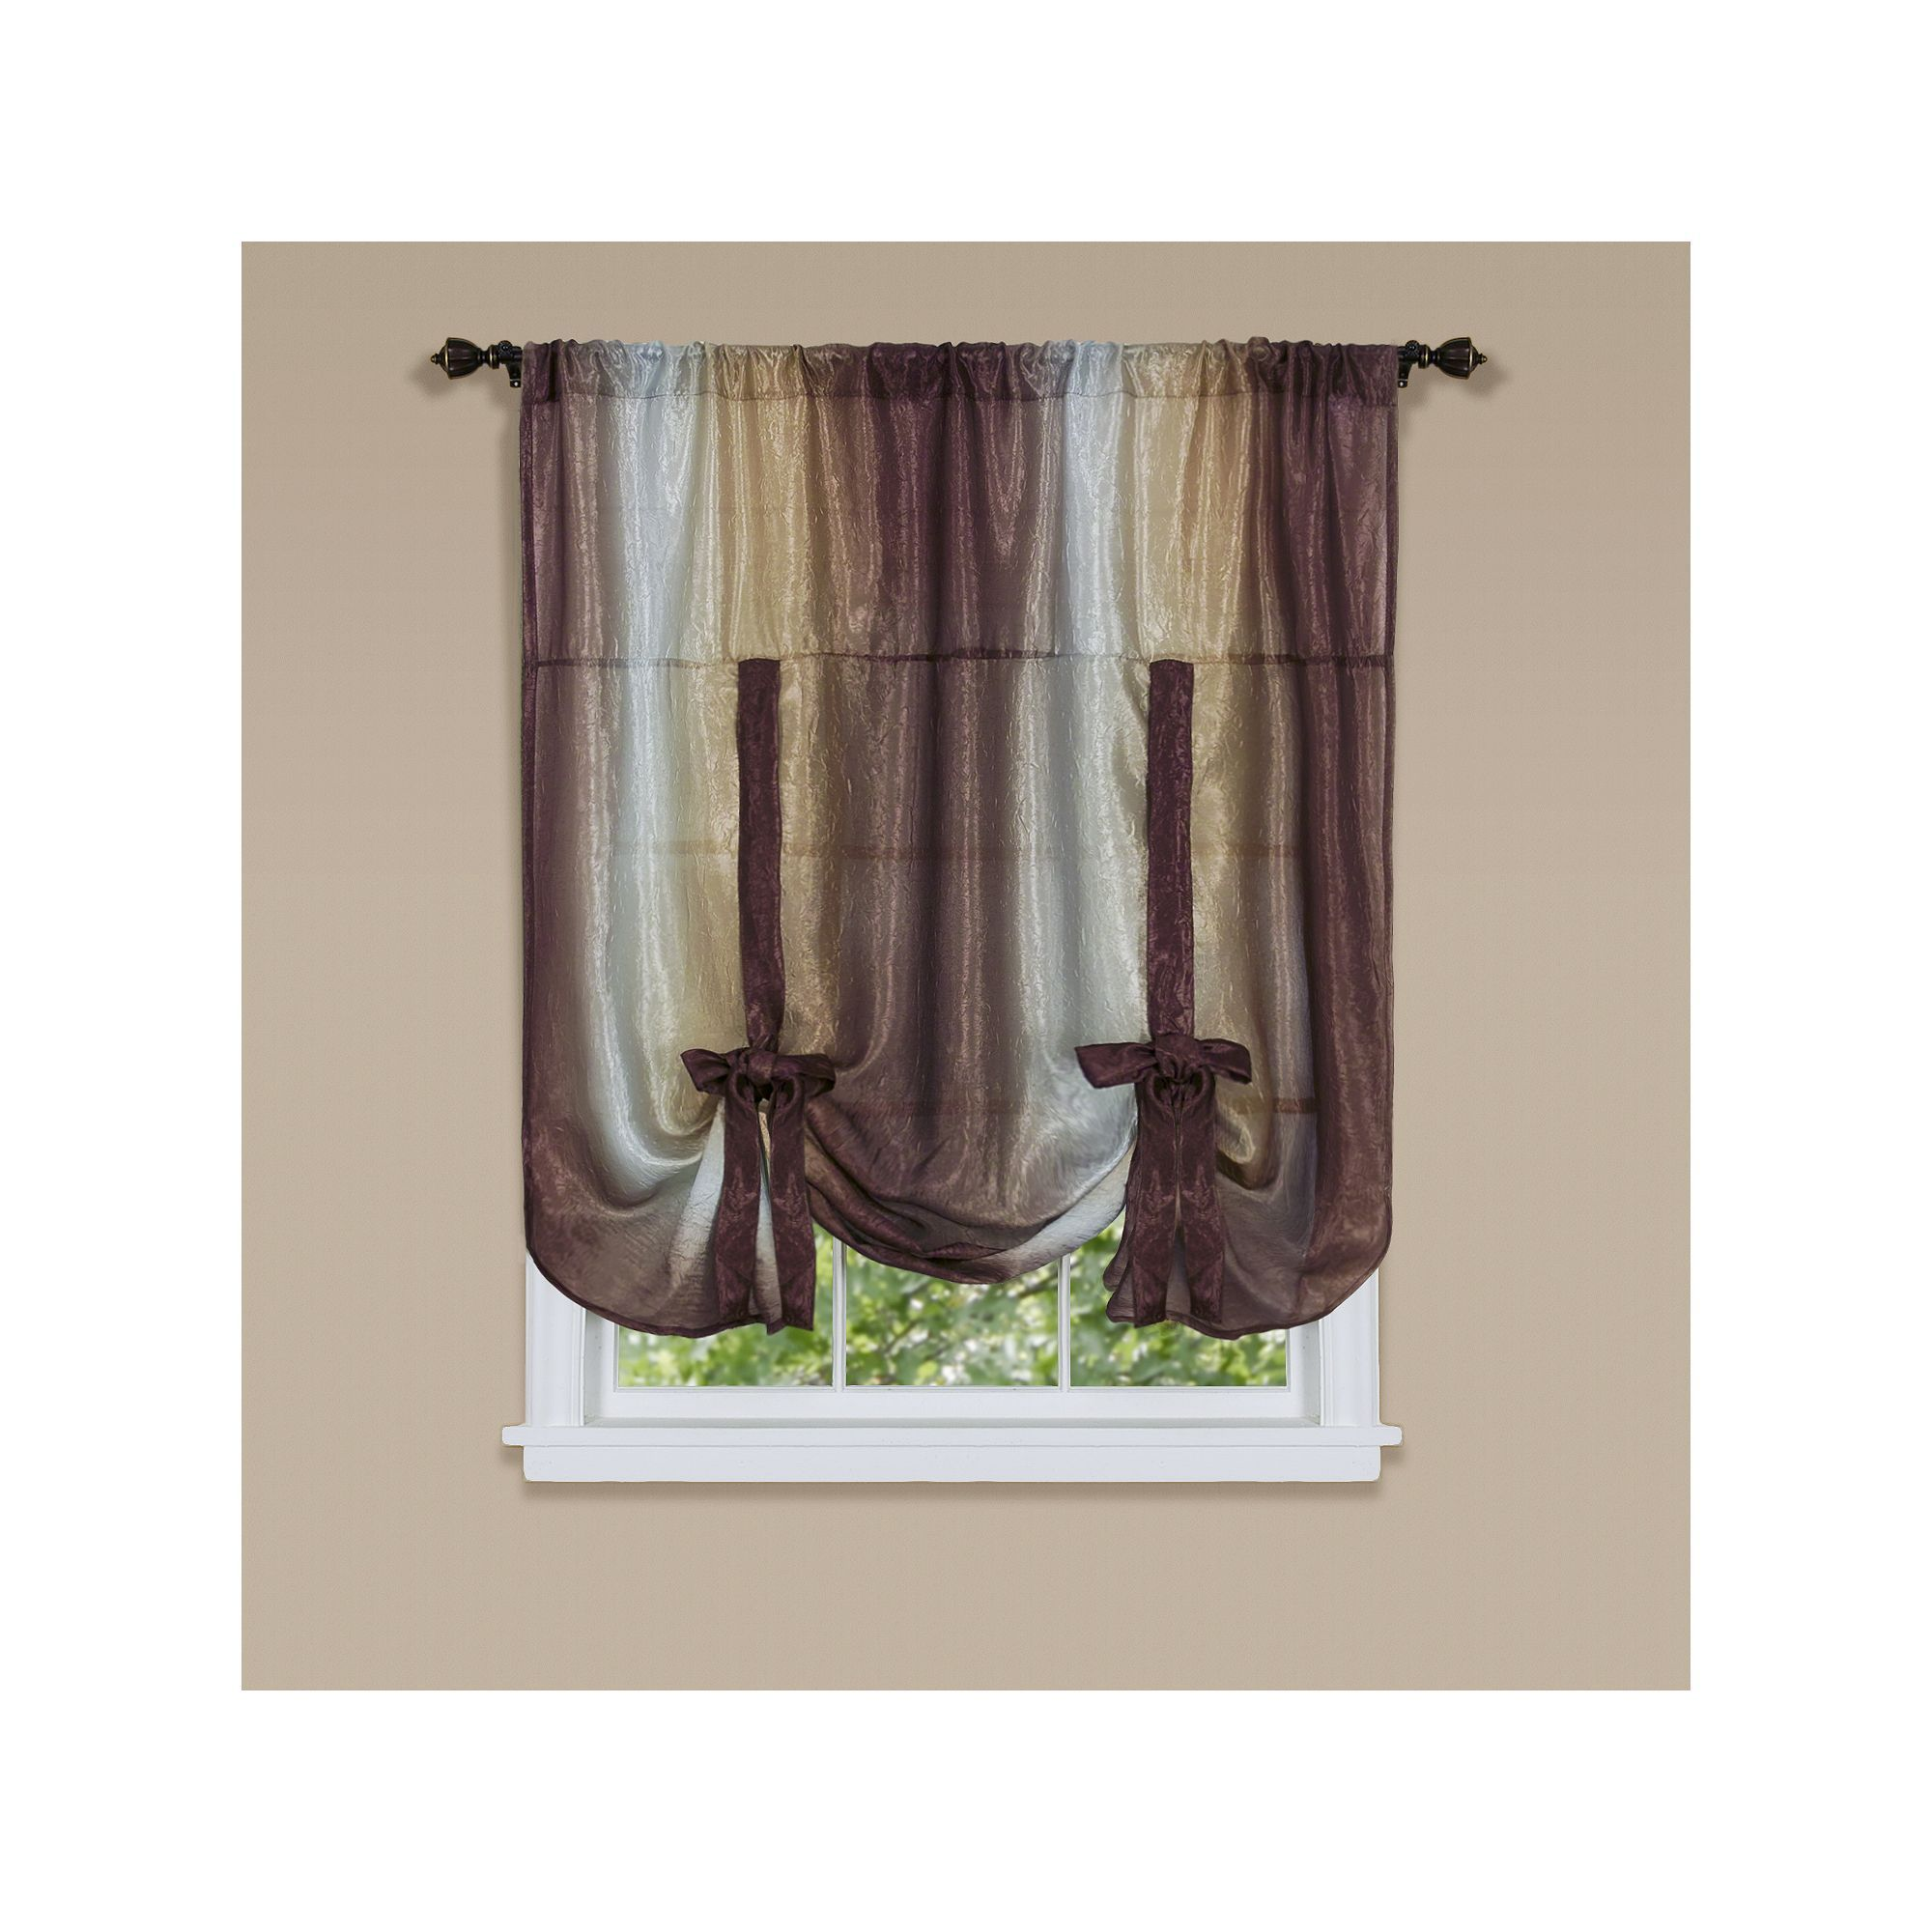 Ombre Tie Up Window Shade 50 X 63 Brown 50x63 Tie Up Shades Burgundy Curtains Panel Curtains